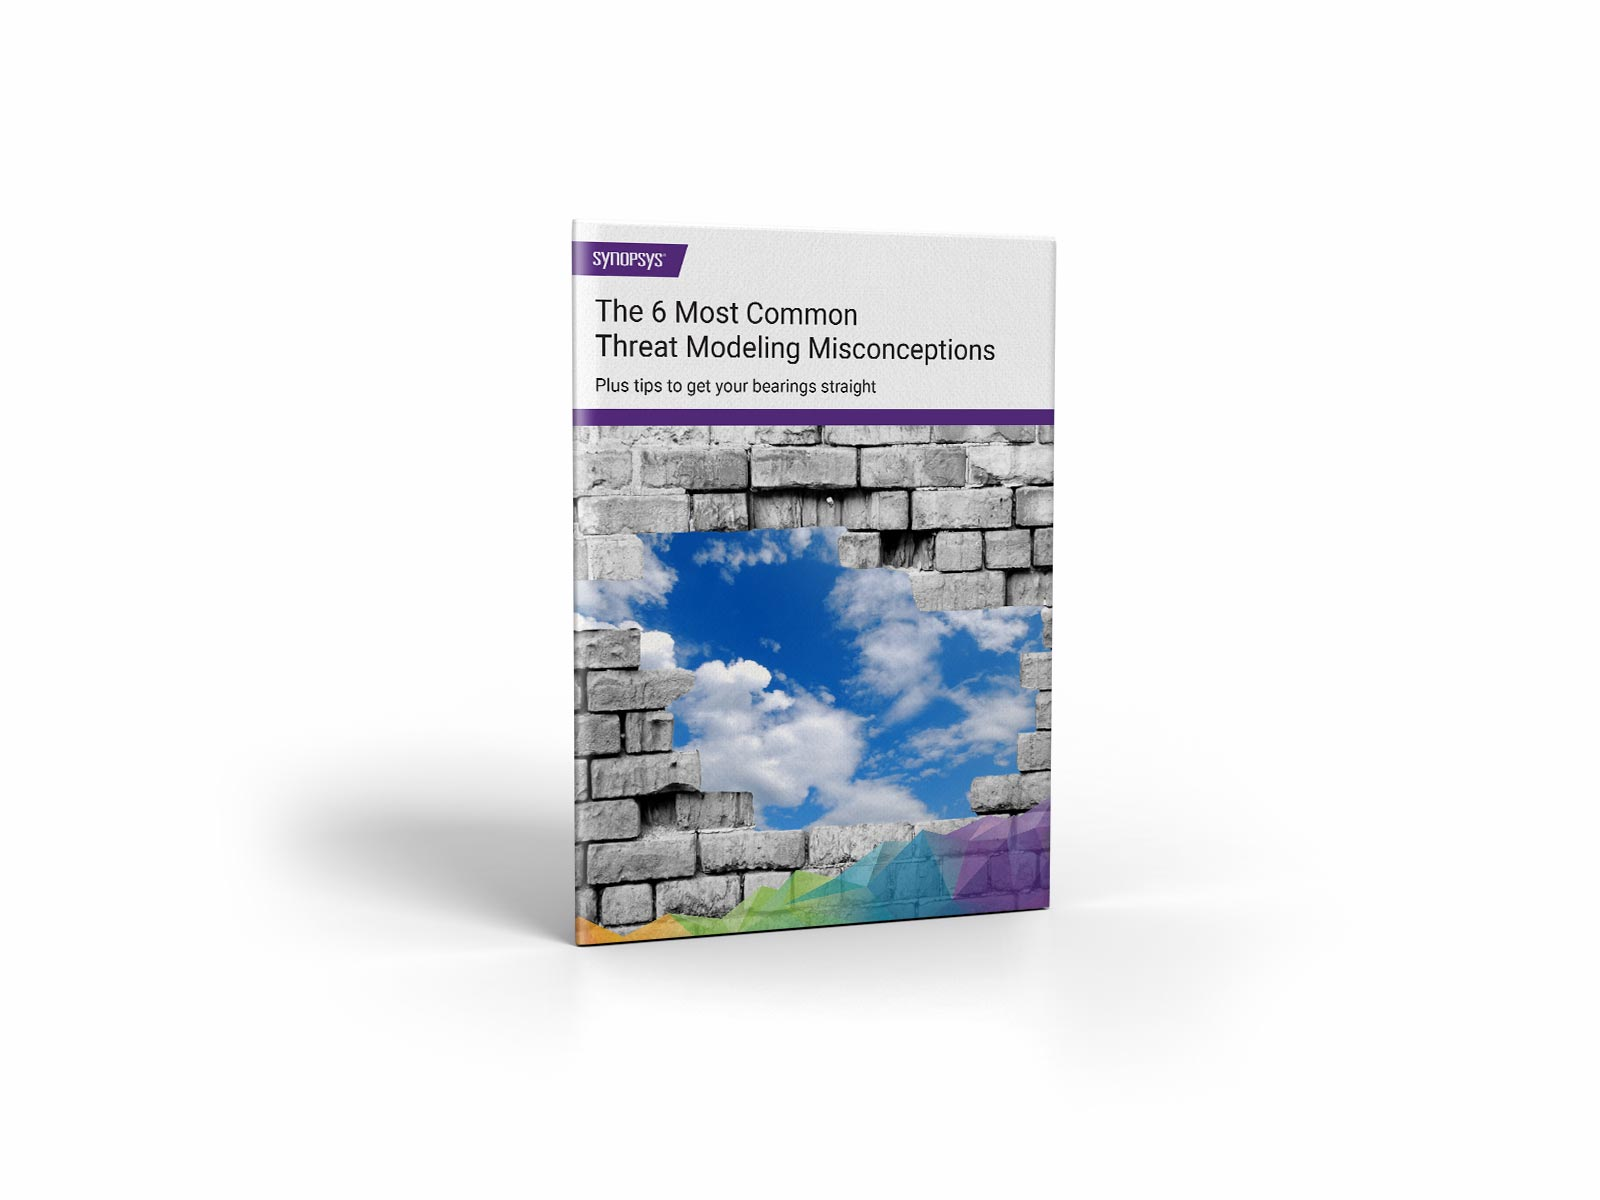 Common security threat modeling misconceptions synopsys fandeluxe Epub